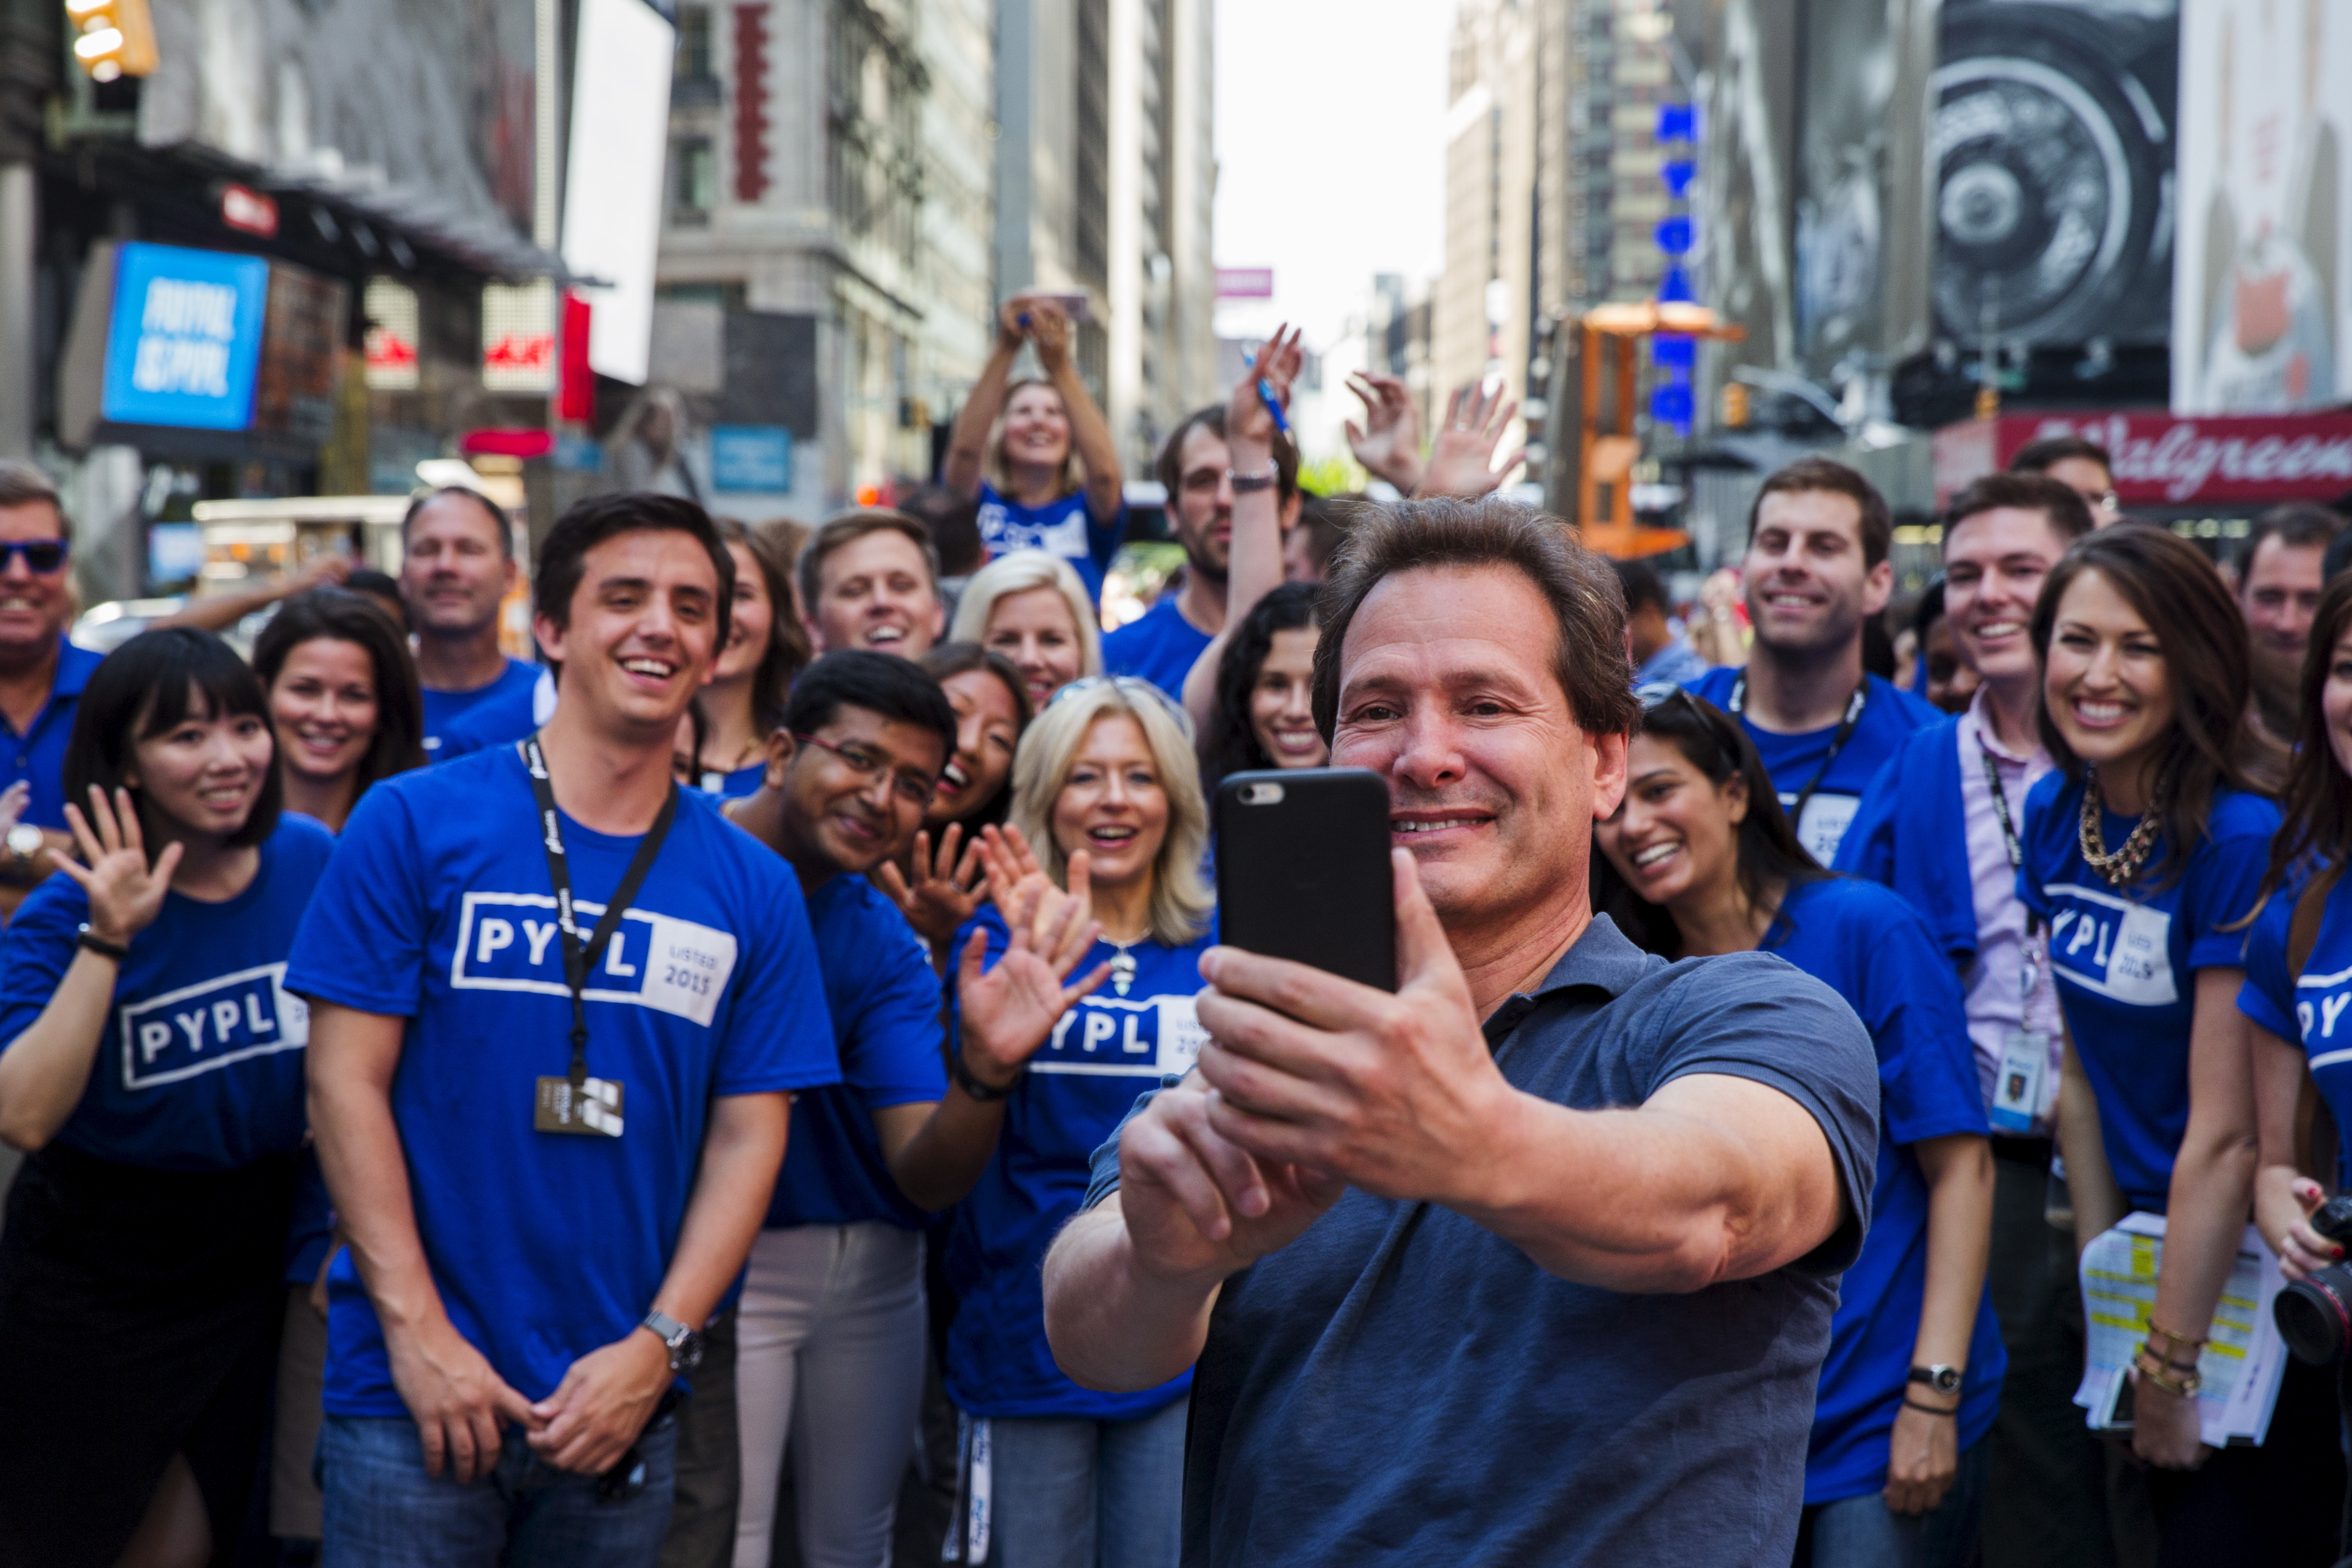 Paypal CEO Dan Schulman celebrates with employees after the company's relisting on the Nasdaq in New York